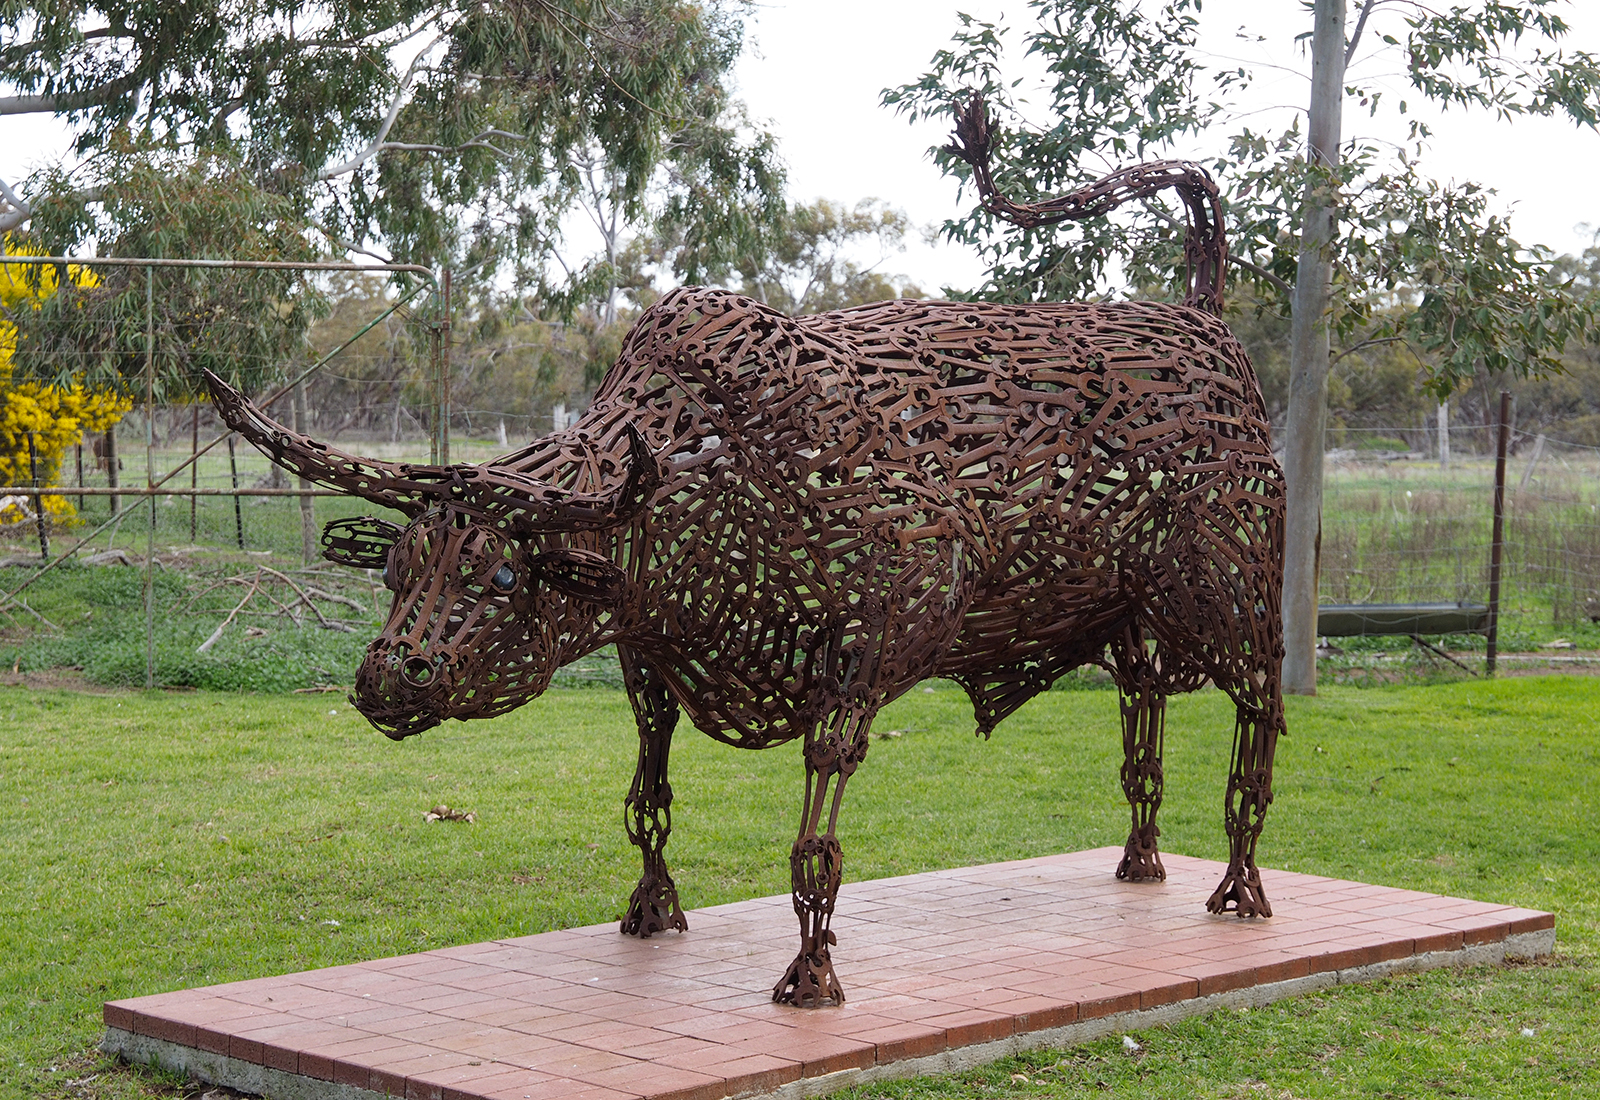 This bull is made of thousands of spanners welded together, no bull